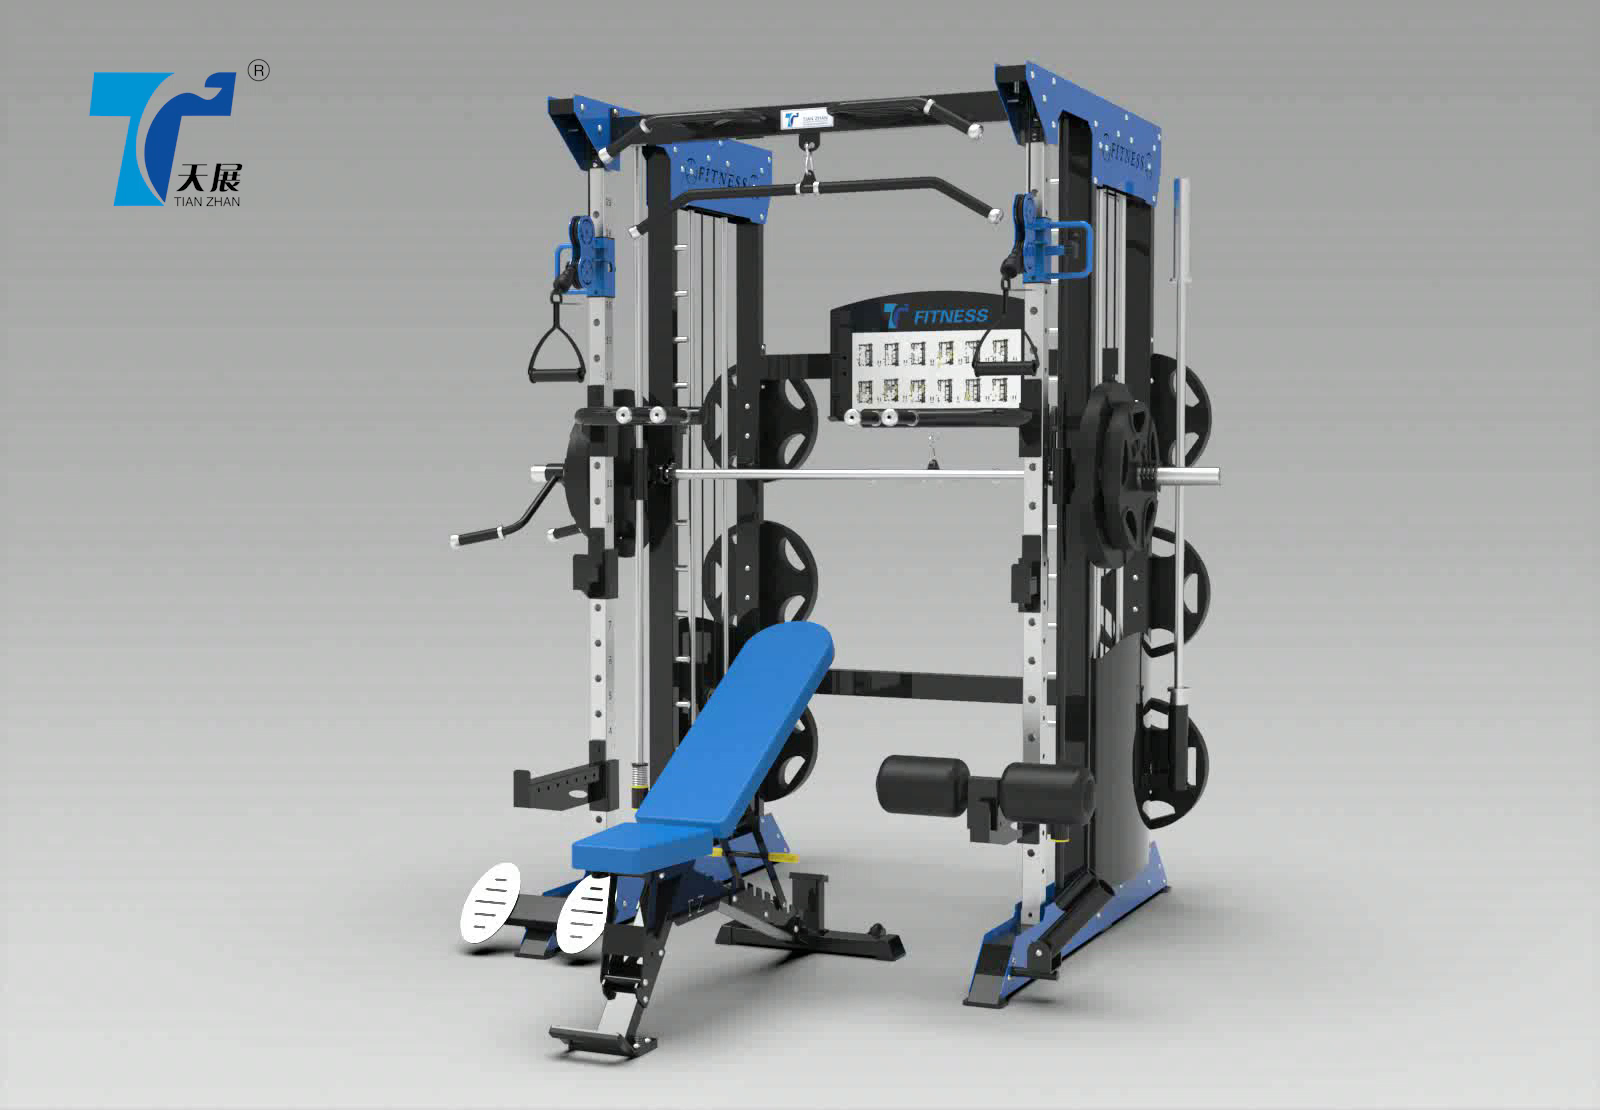 Factory Price Home Use Strength Fitness Equipment Multi Gym Single Station